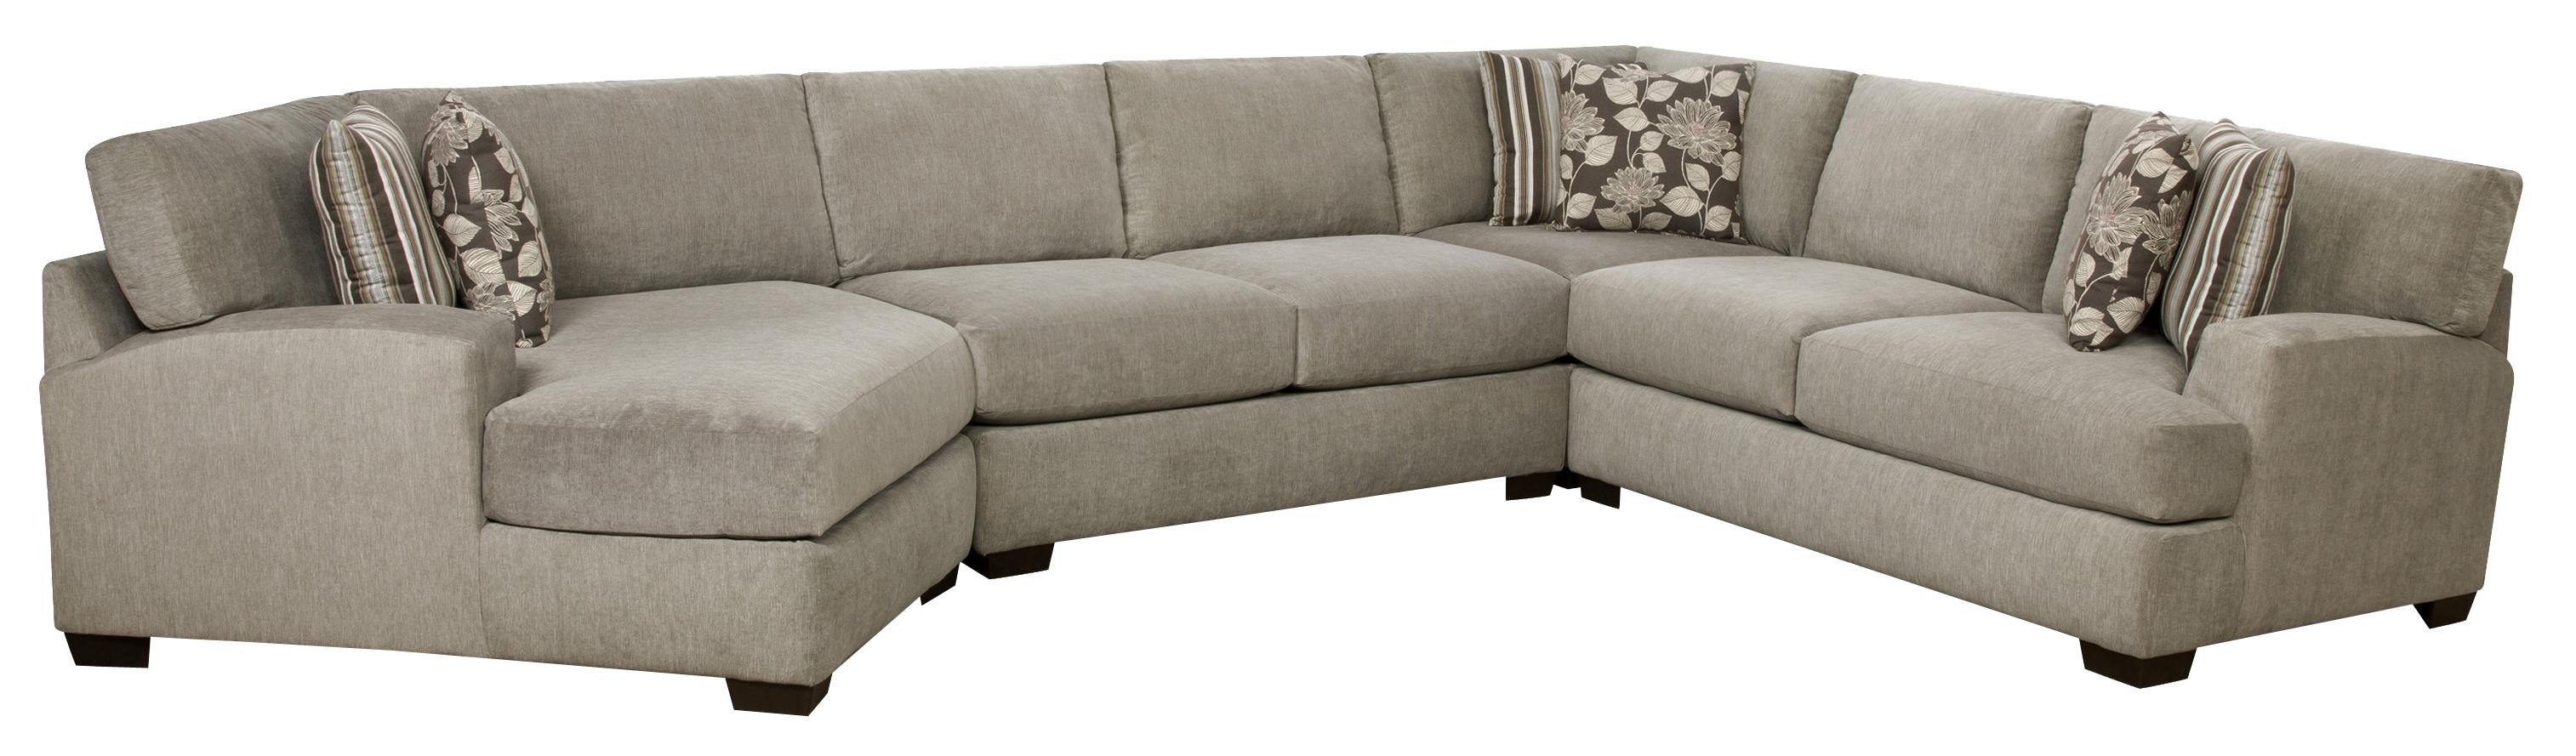 Corinthian 29A0 Sectional Sofa - Item Number: 29A9RF+2NA+1CP+2LF